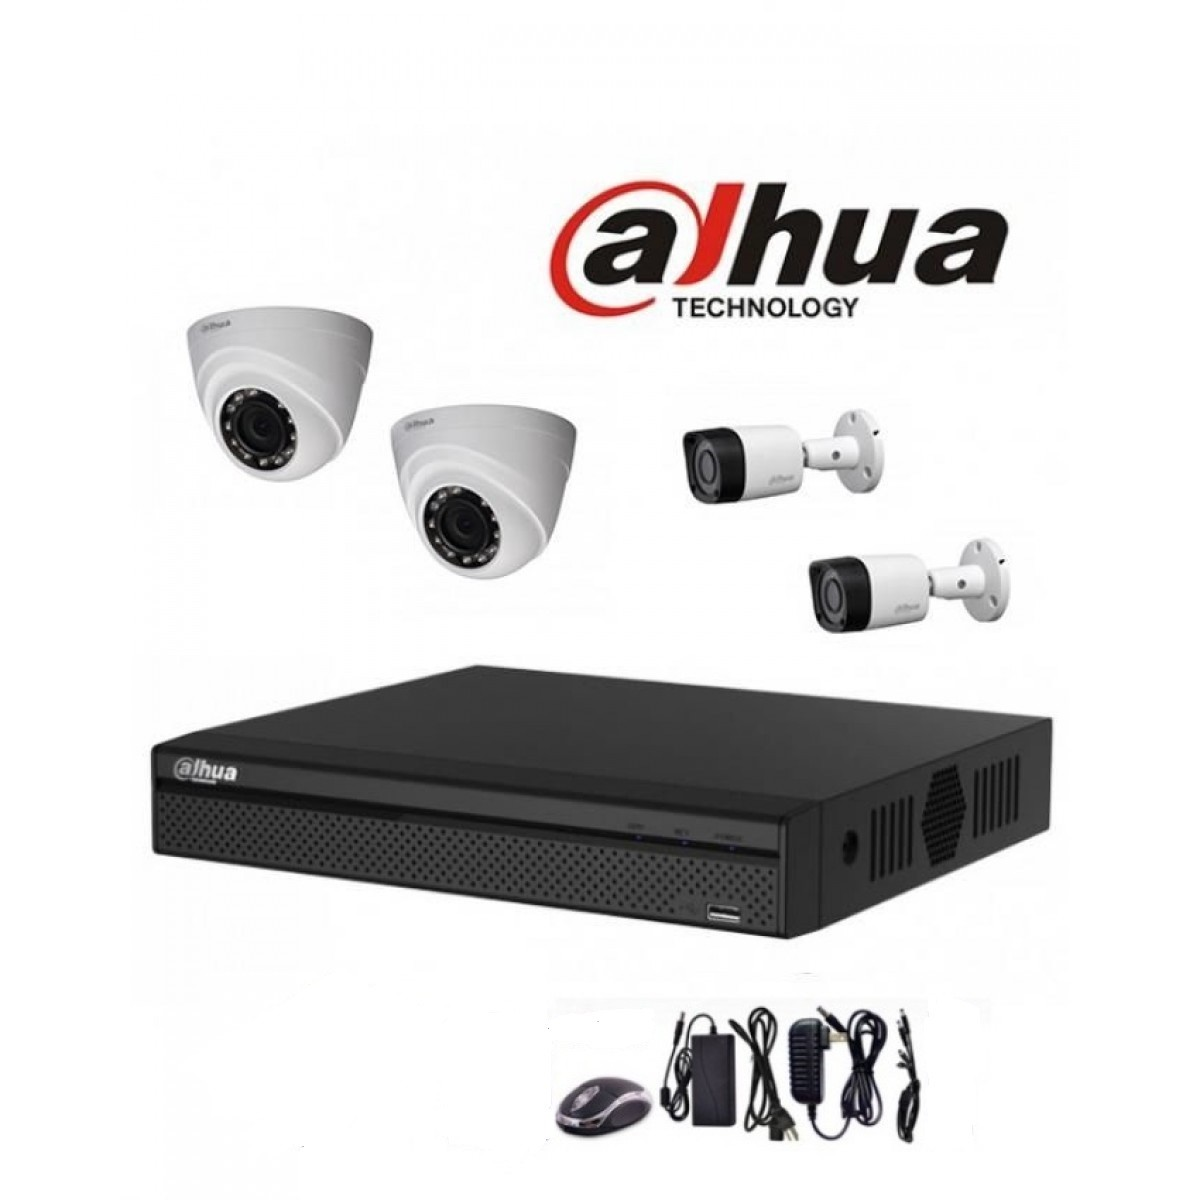 Camera De Surveillance Exterieur Dahua Pack 4 4 Camera Dahua 2 Mp Lamaison